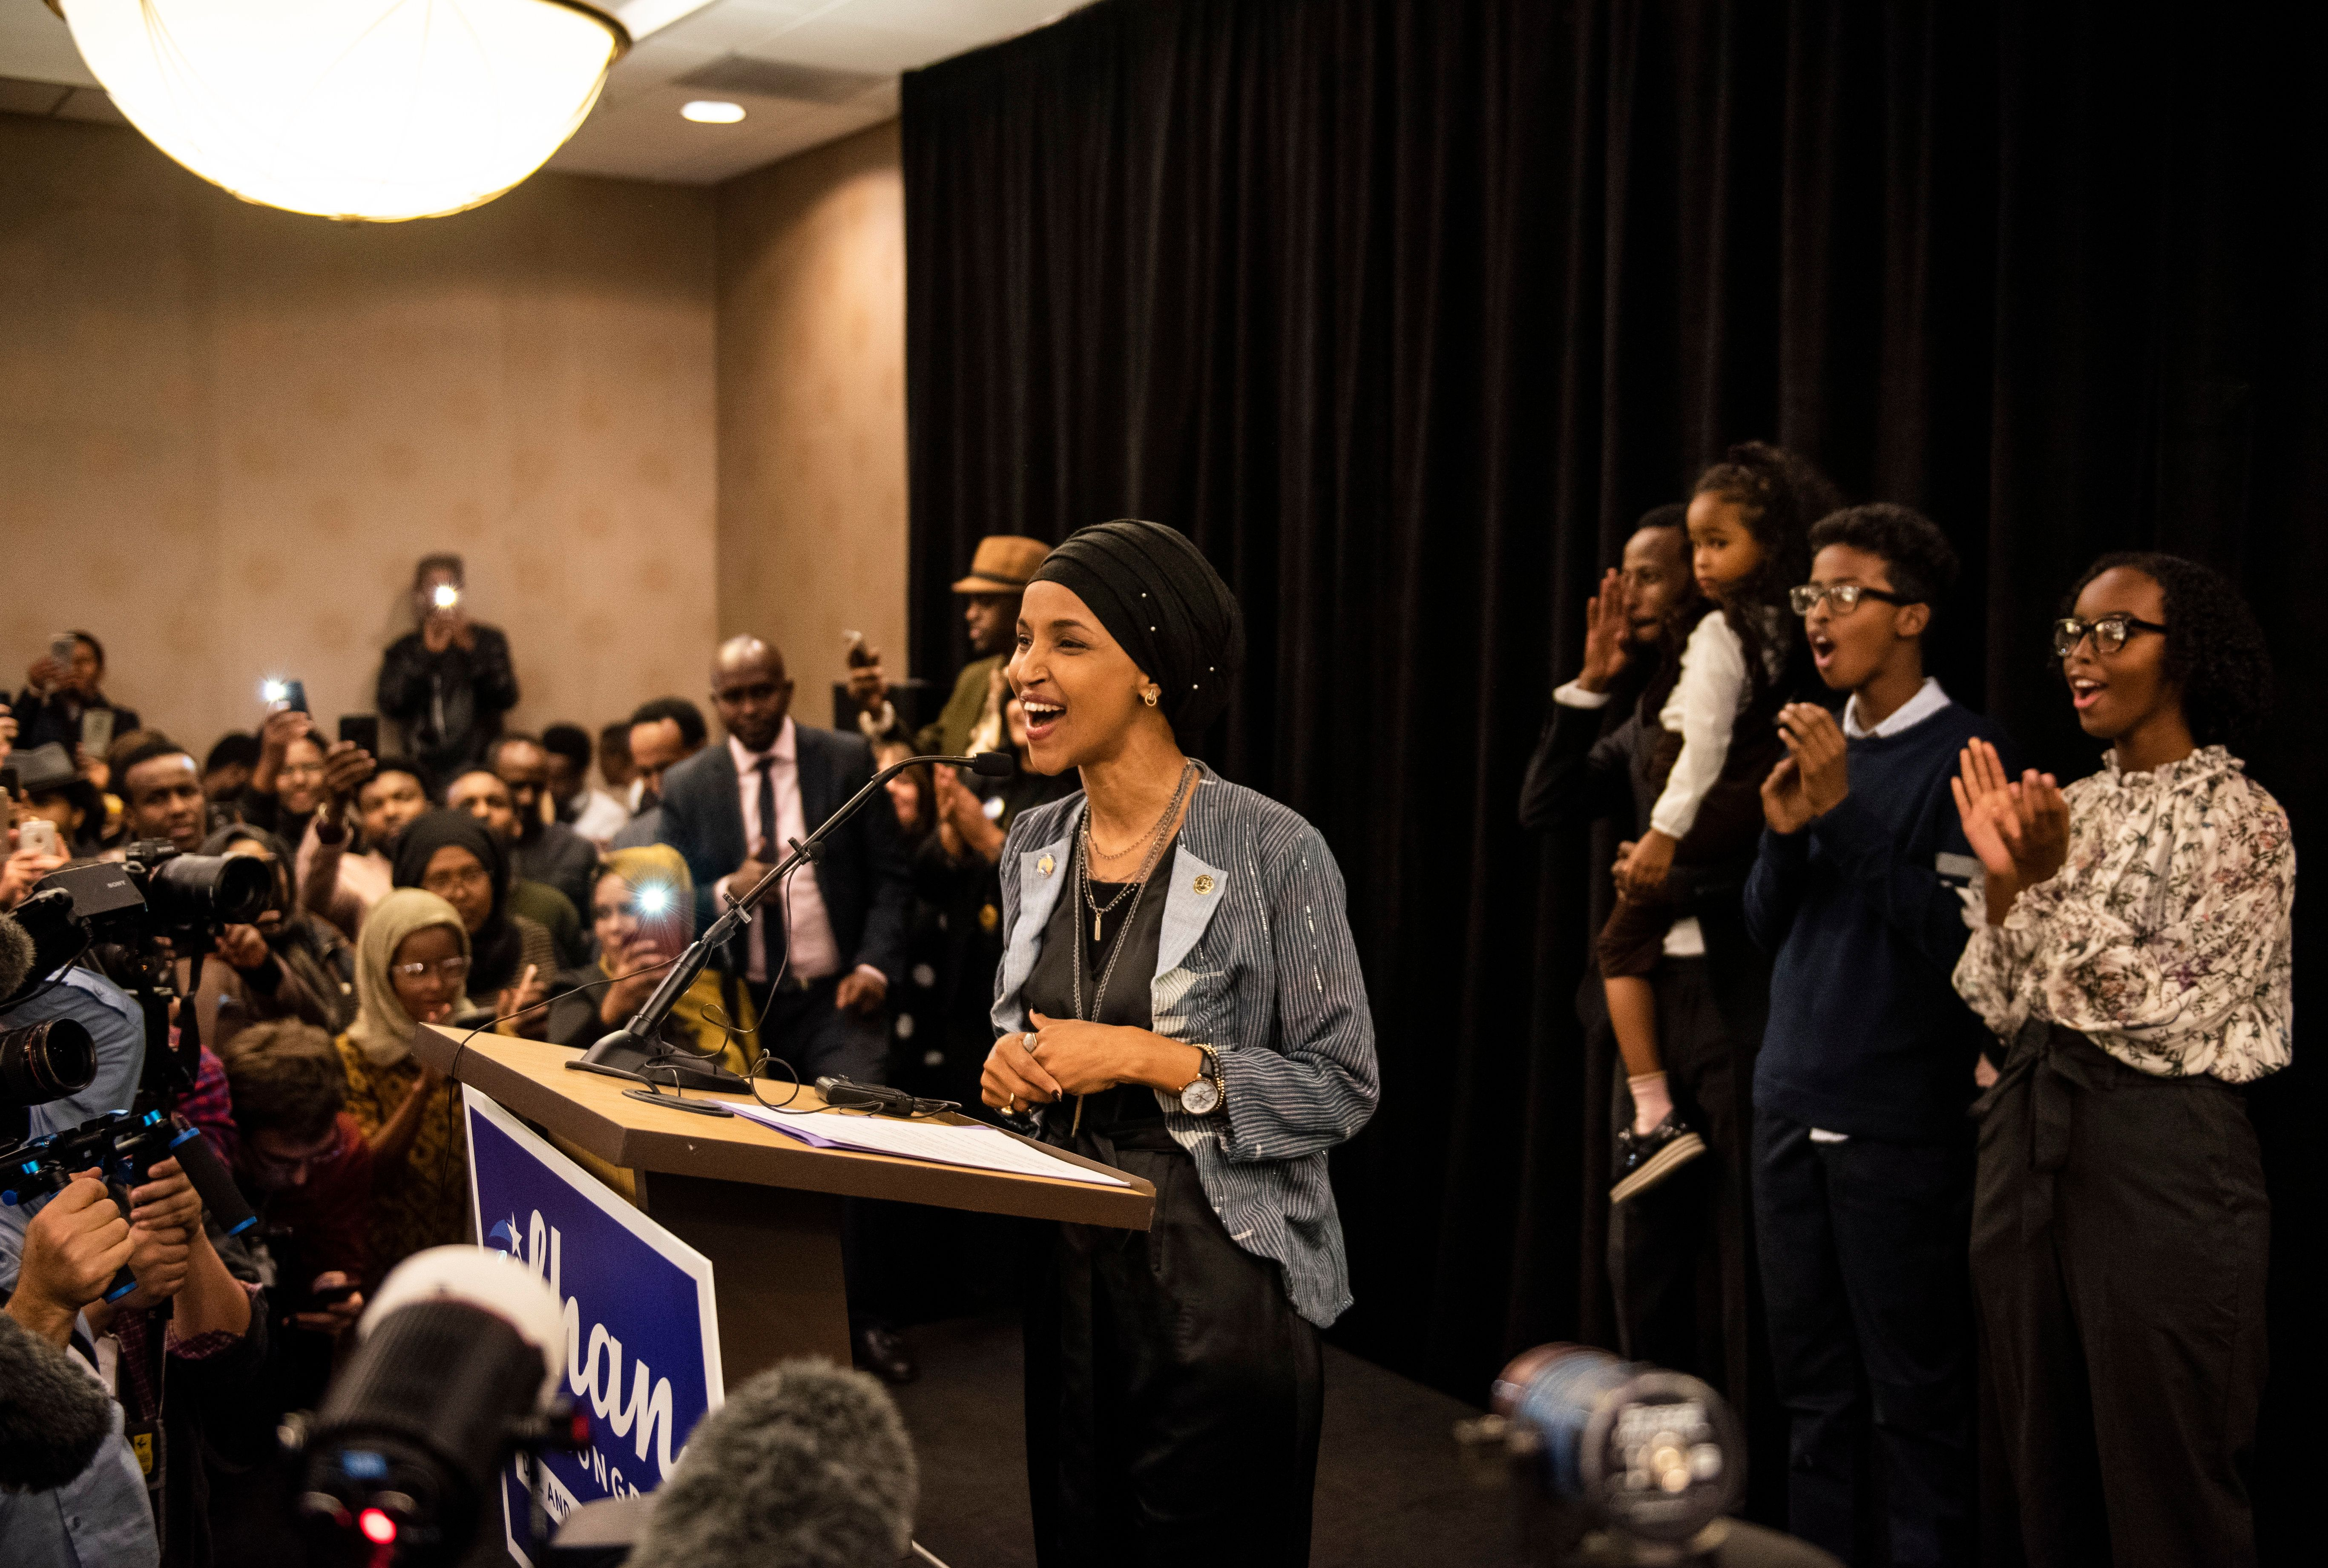 MINNEAPOLIS, MN - NOVEMBER 06: Minnesota Democratic Congressional-elect Ilhan Omar speaks at an election night results party on November 6, 2018 in Minneapolis, Minnesota. Omar won the race for Minnesota's 5th congressional district seat against Republican candidate Jennifer Zielinski to become one of the first Muslim women elected to Congress. (Photo by Stephen Maturen/Getty Images)